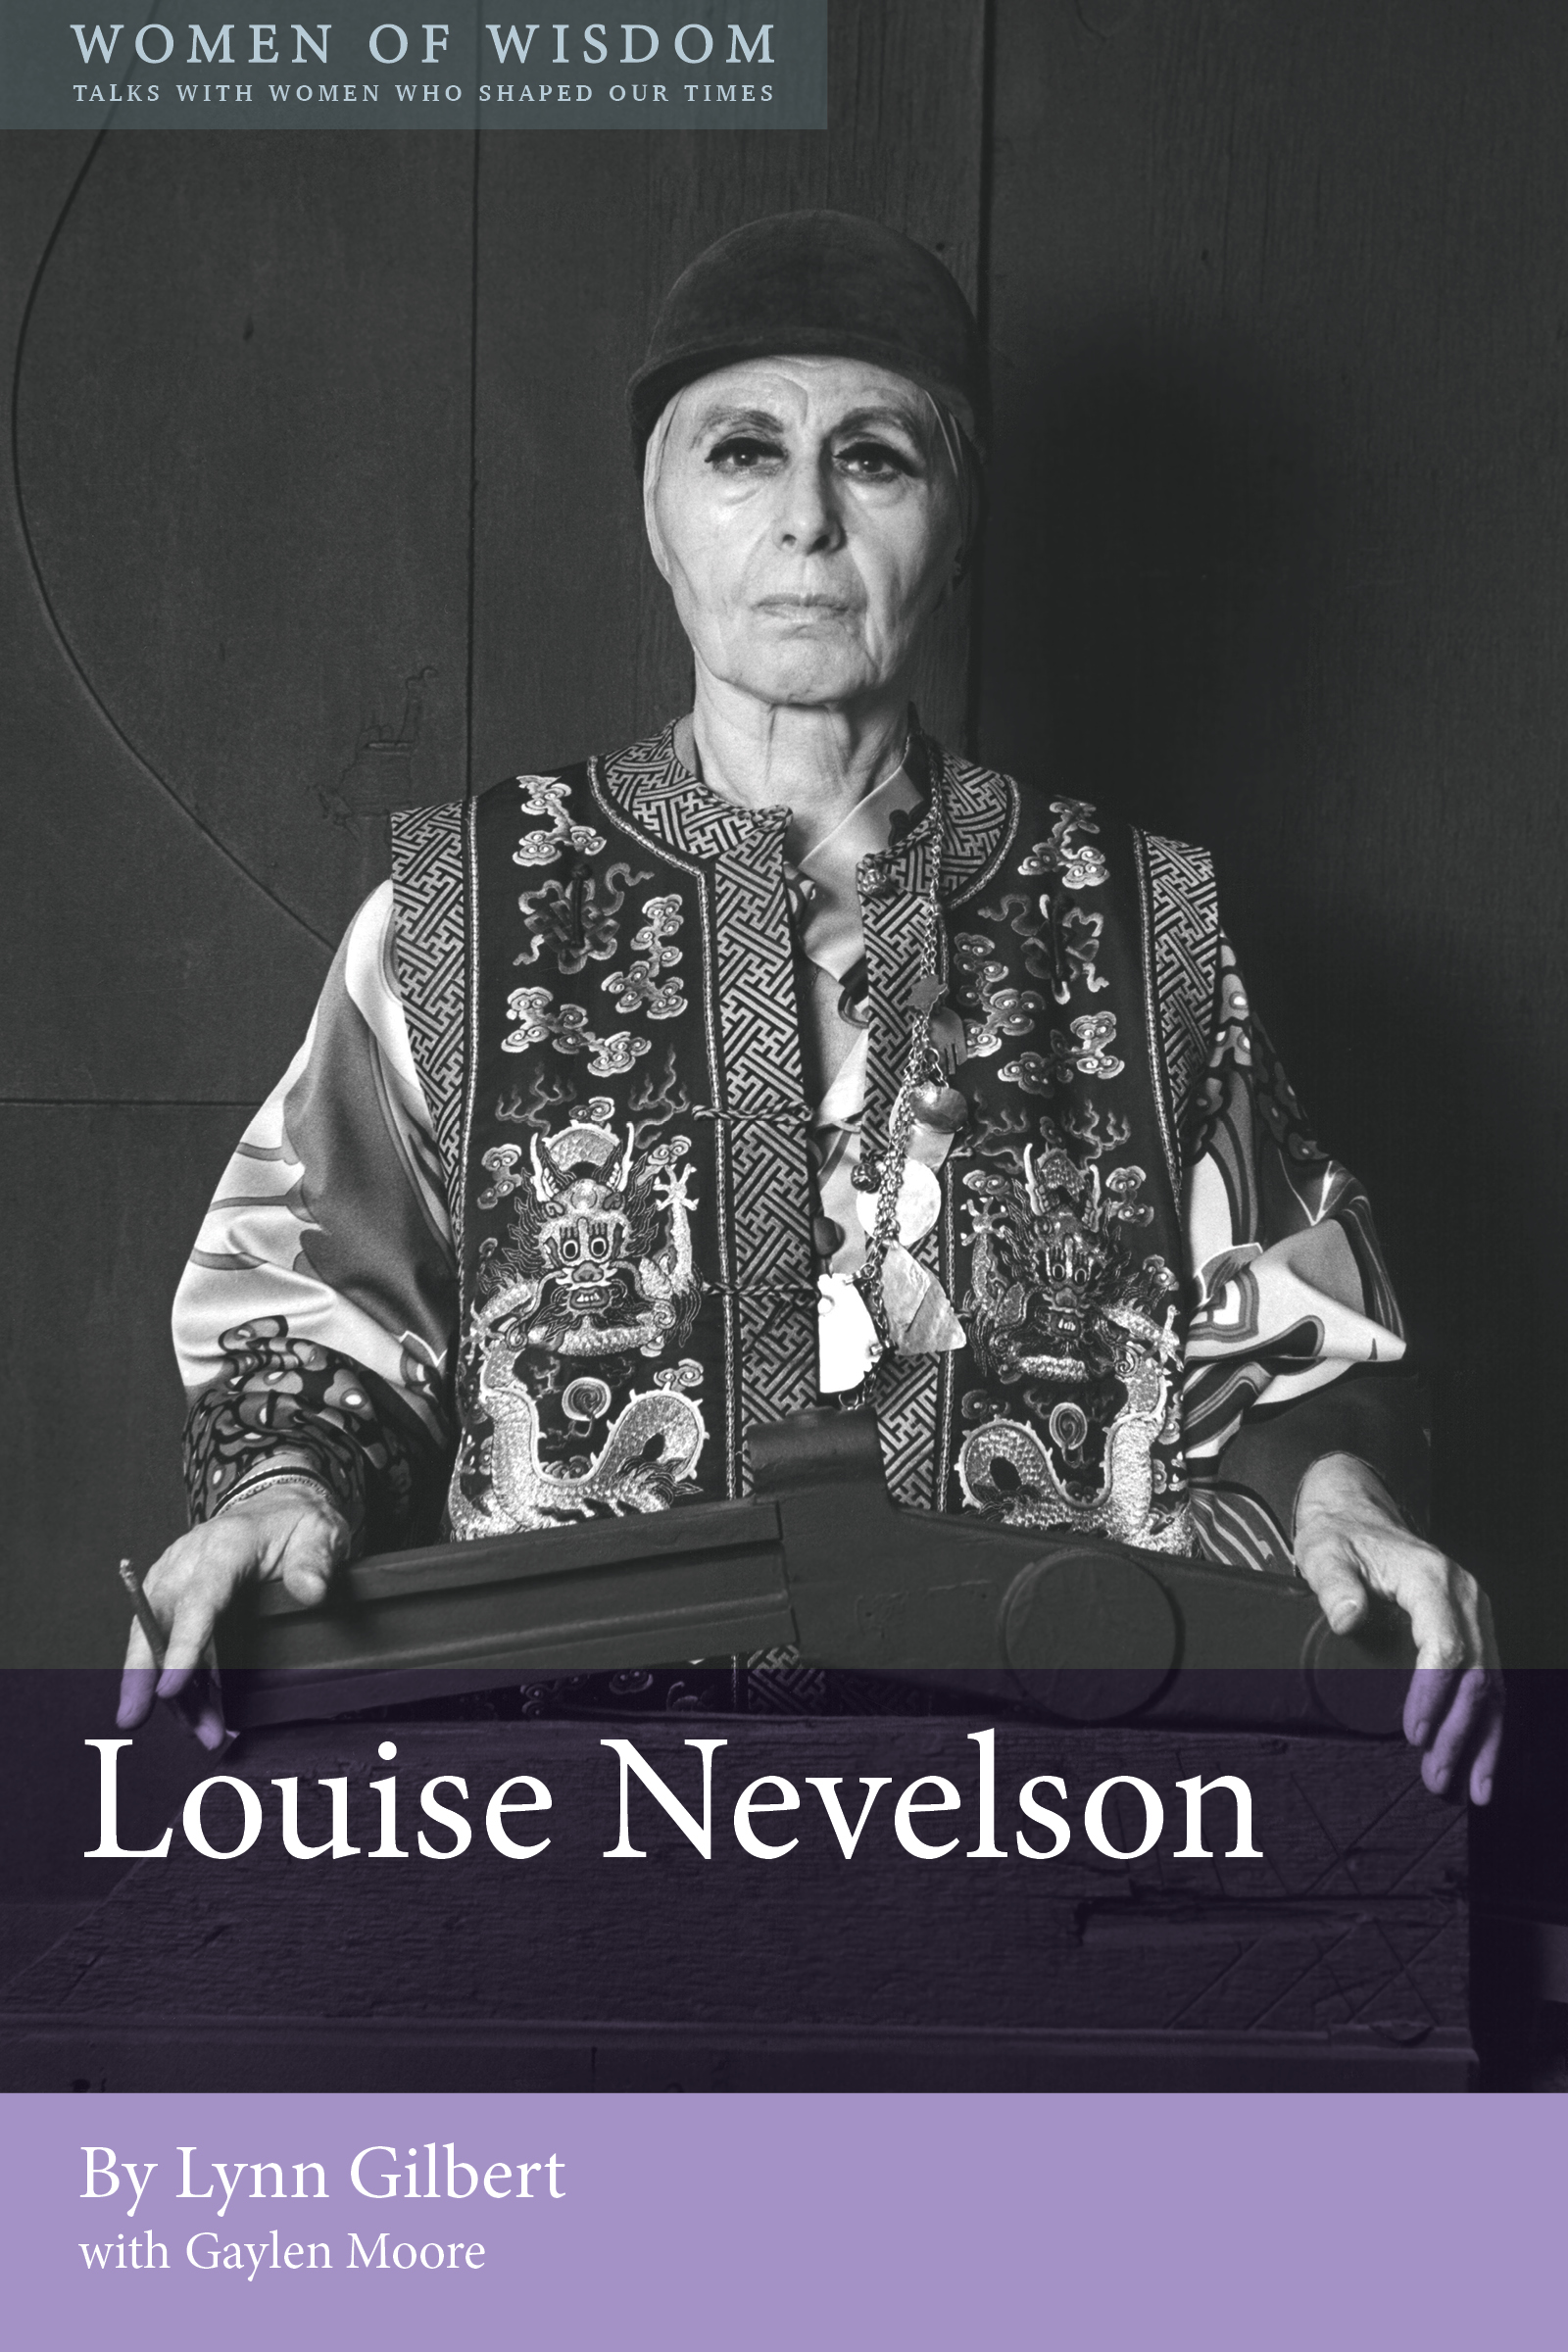 Louise_Nevelson_Photographed_by_Lynn_Gilbert_©_1981_Particular_Passions